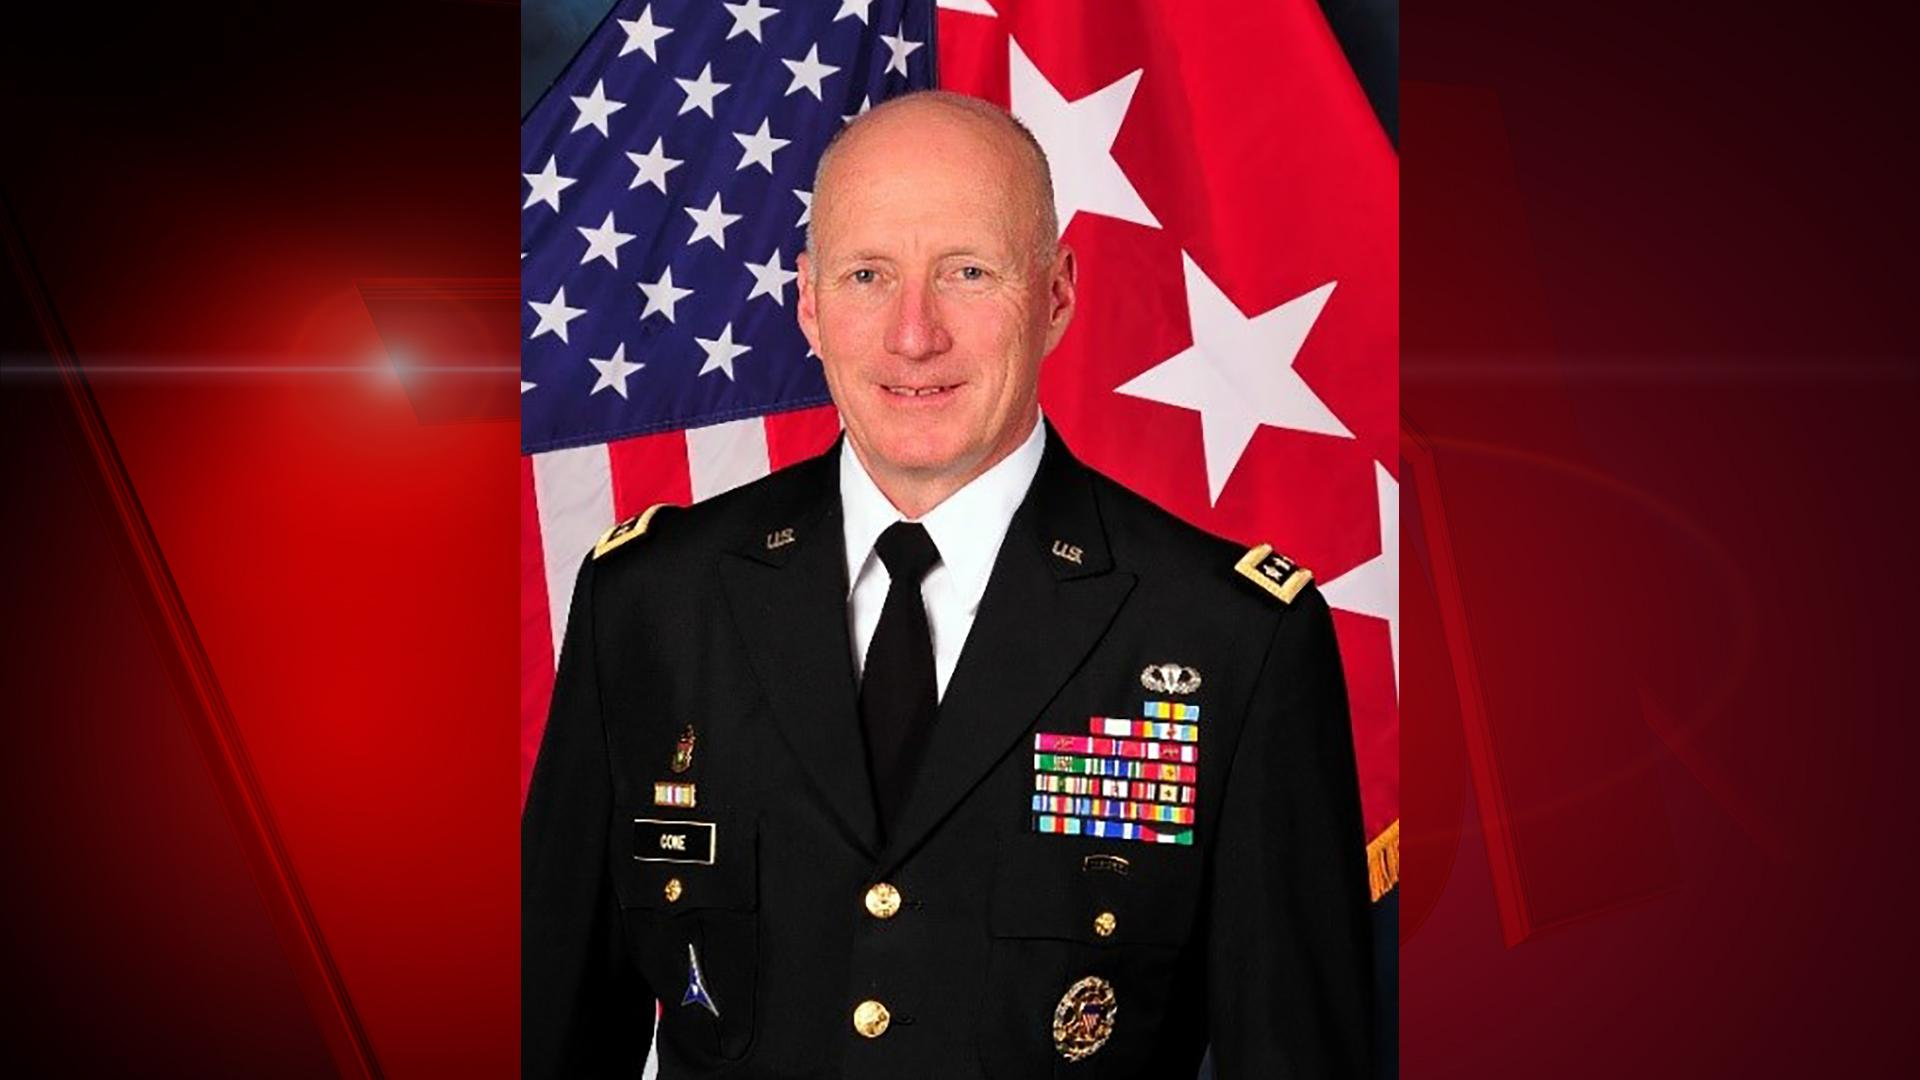 Four-Star General, Robert Cone (Photo courtesy of US Army/Jill Cone)